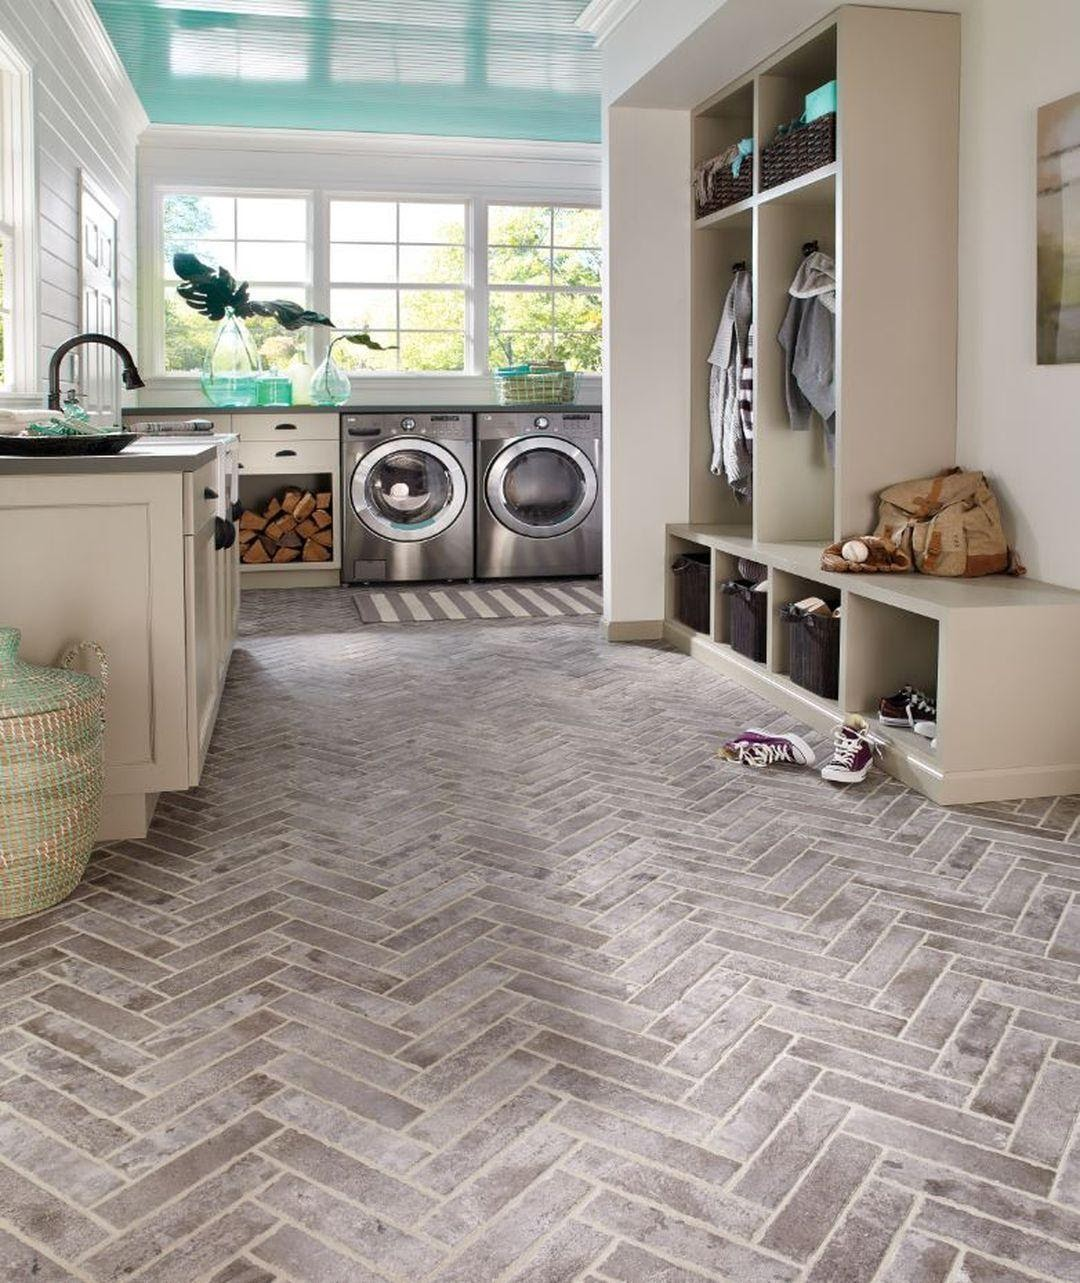 7. The Laundry and Mudroom Combo by simphome.com